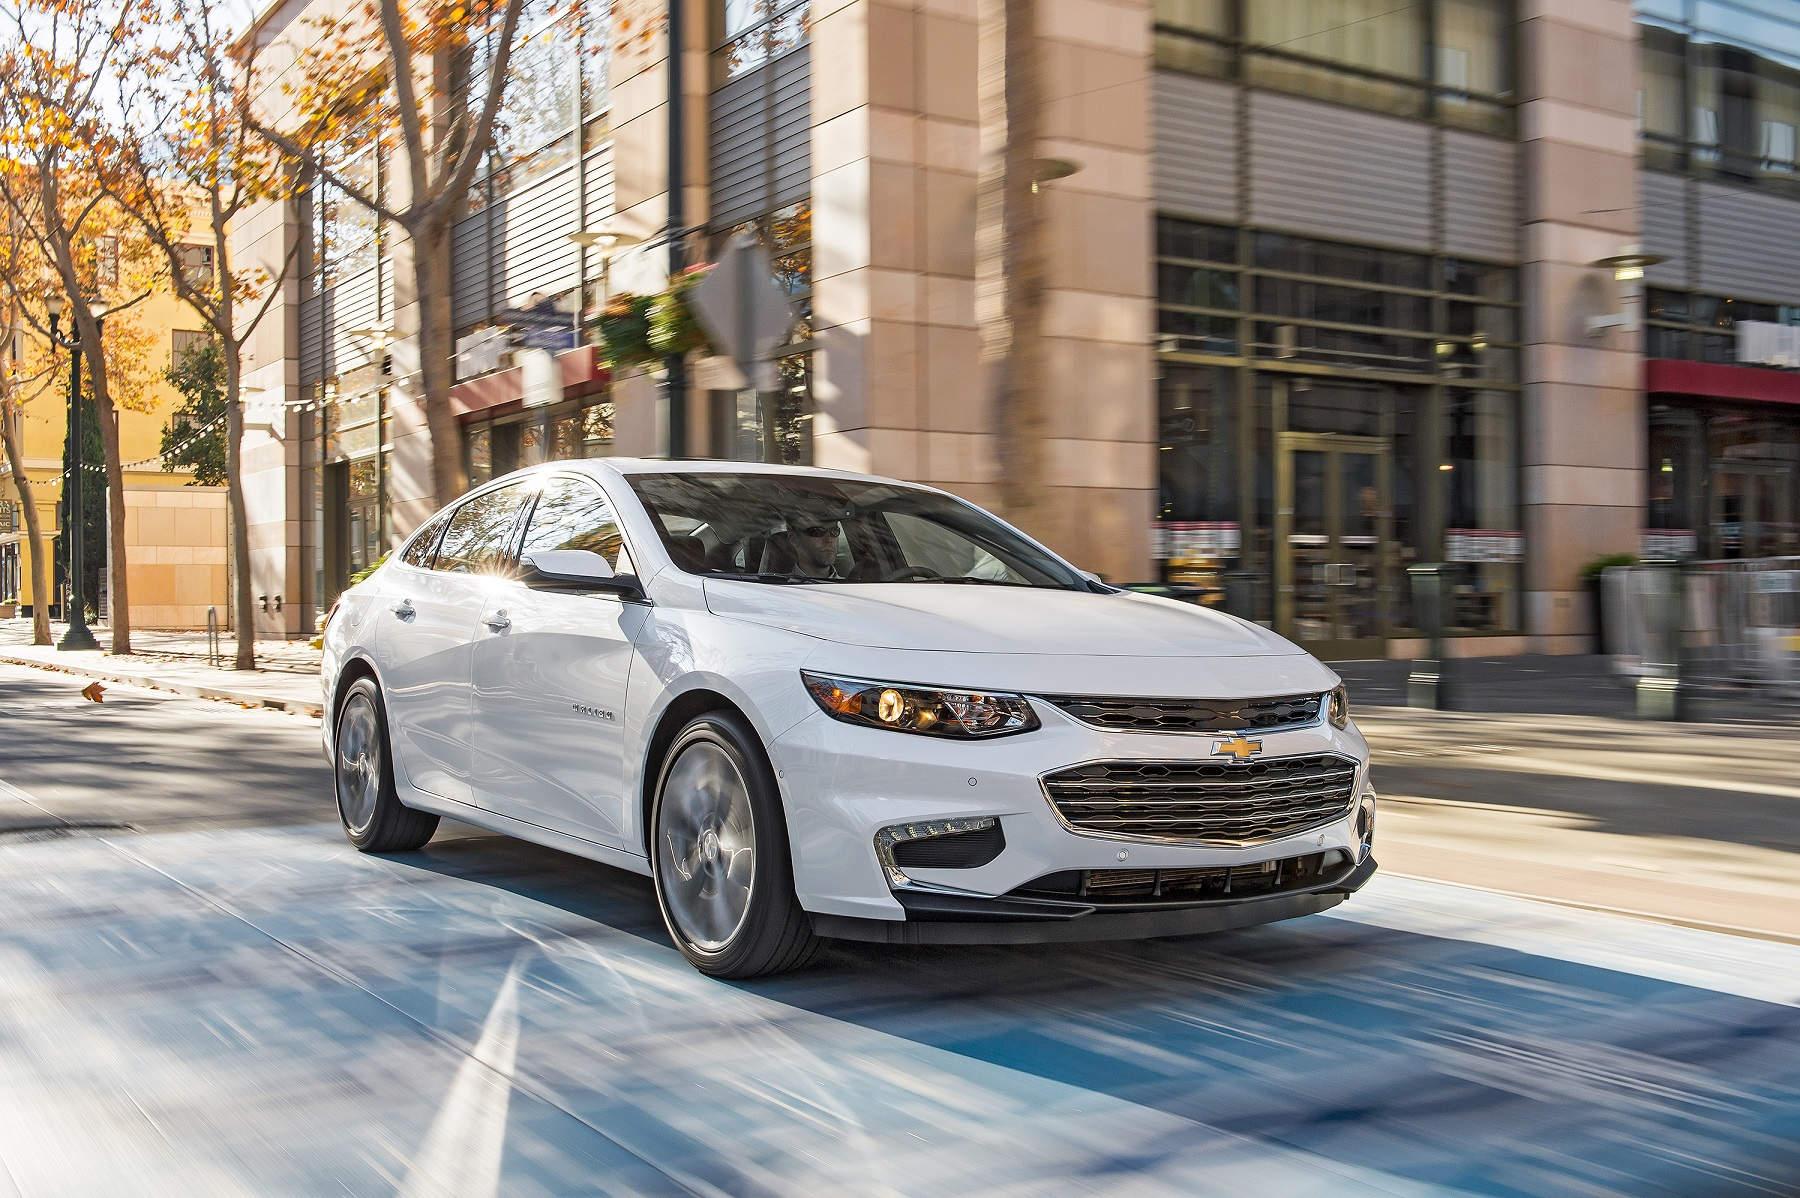 Following A Complete Redesign For The 2016 Model Year 2017 Chevrolet Malibu Now Stands As One